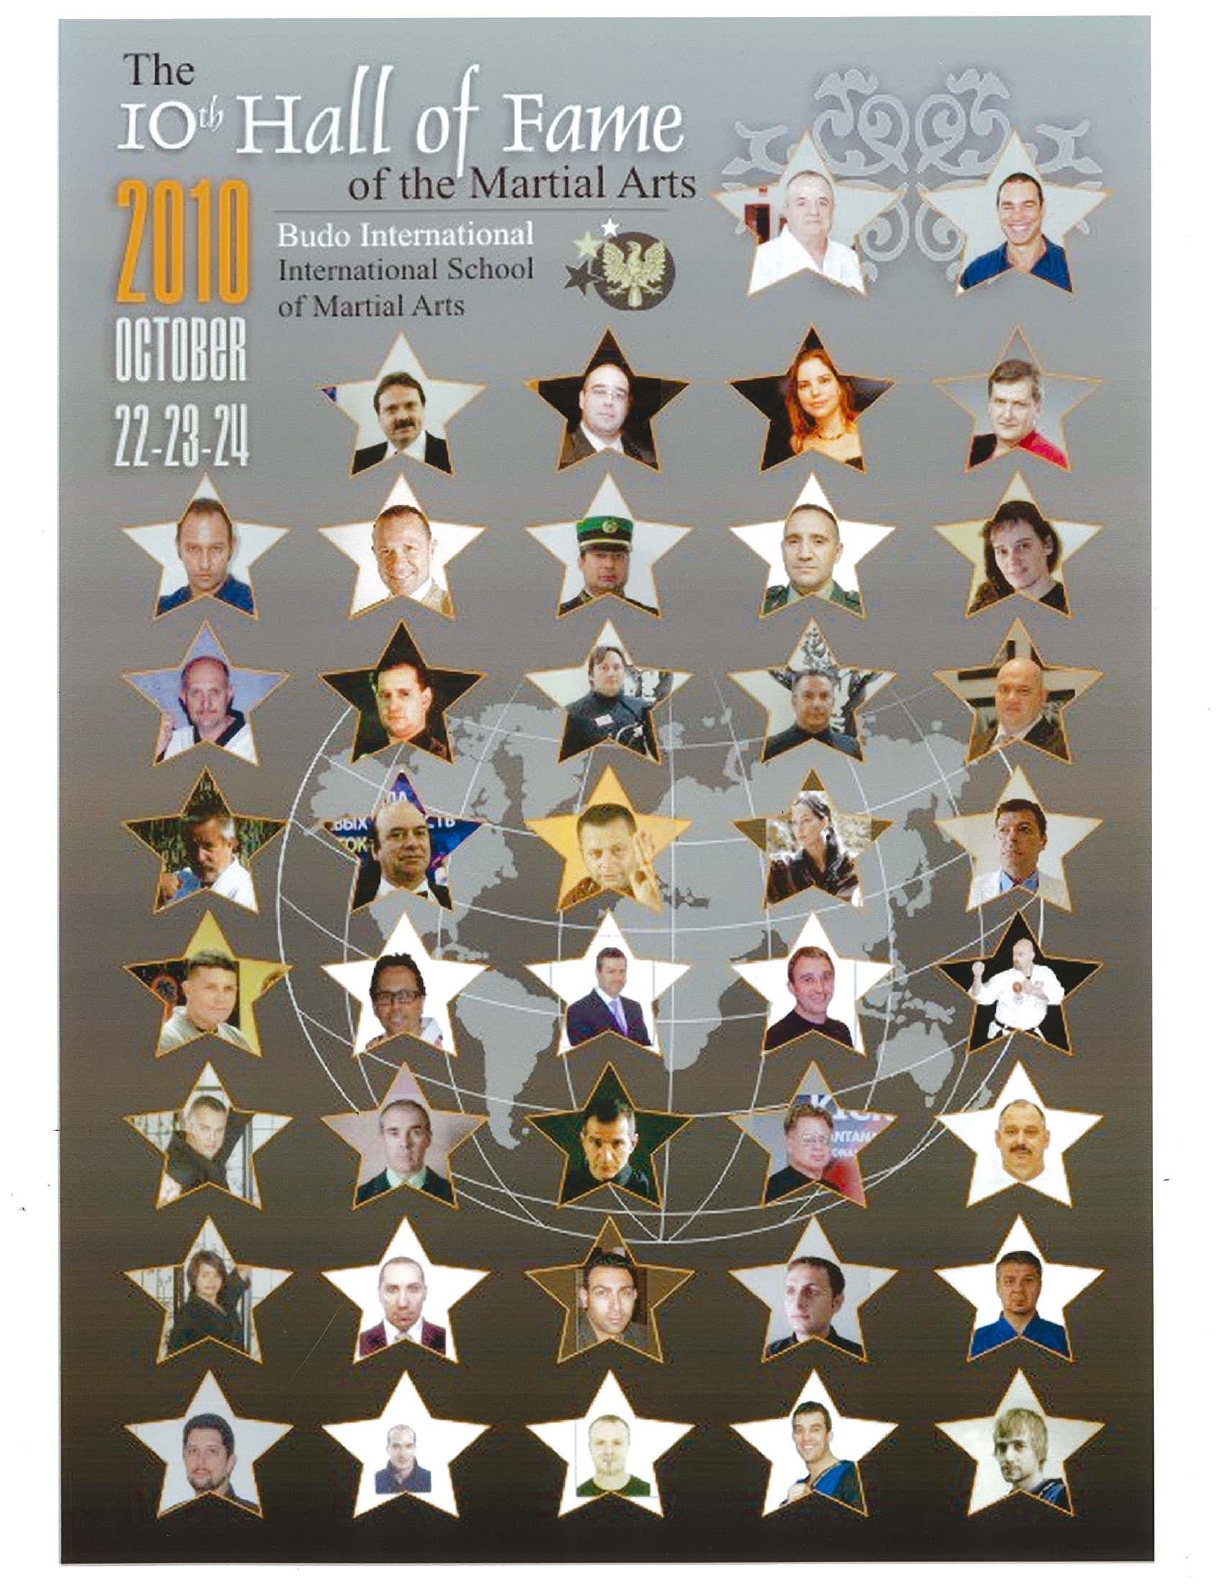 2010 AFFICHE 10eme HALL OF FAME